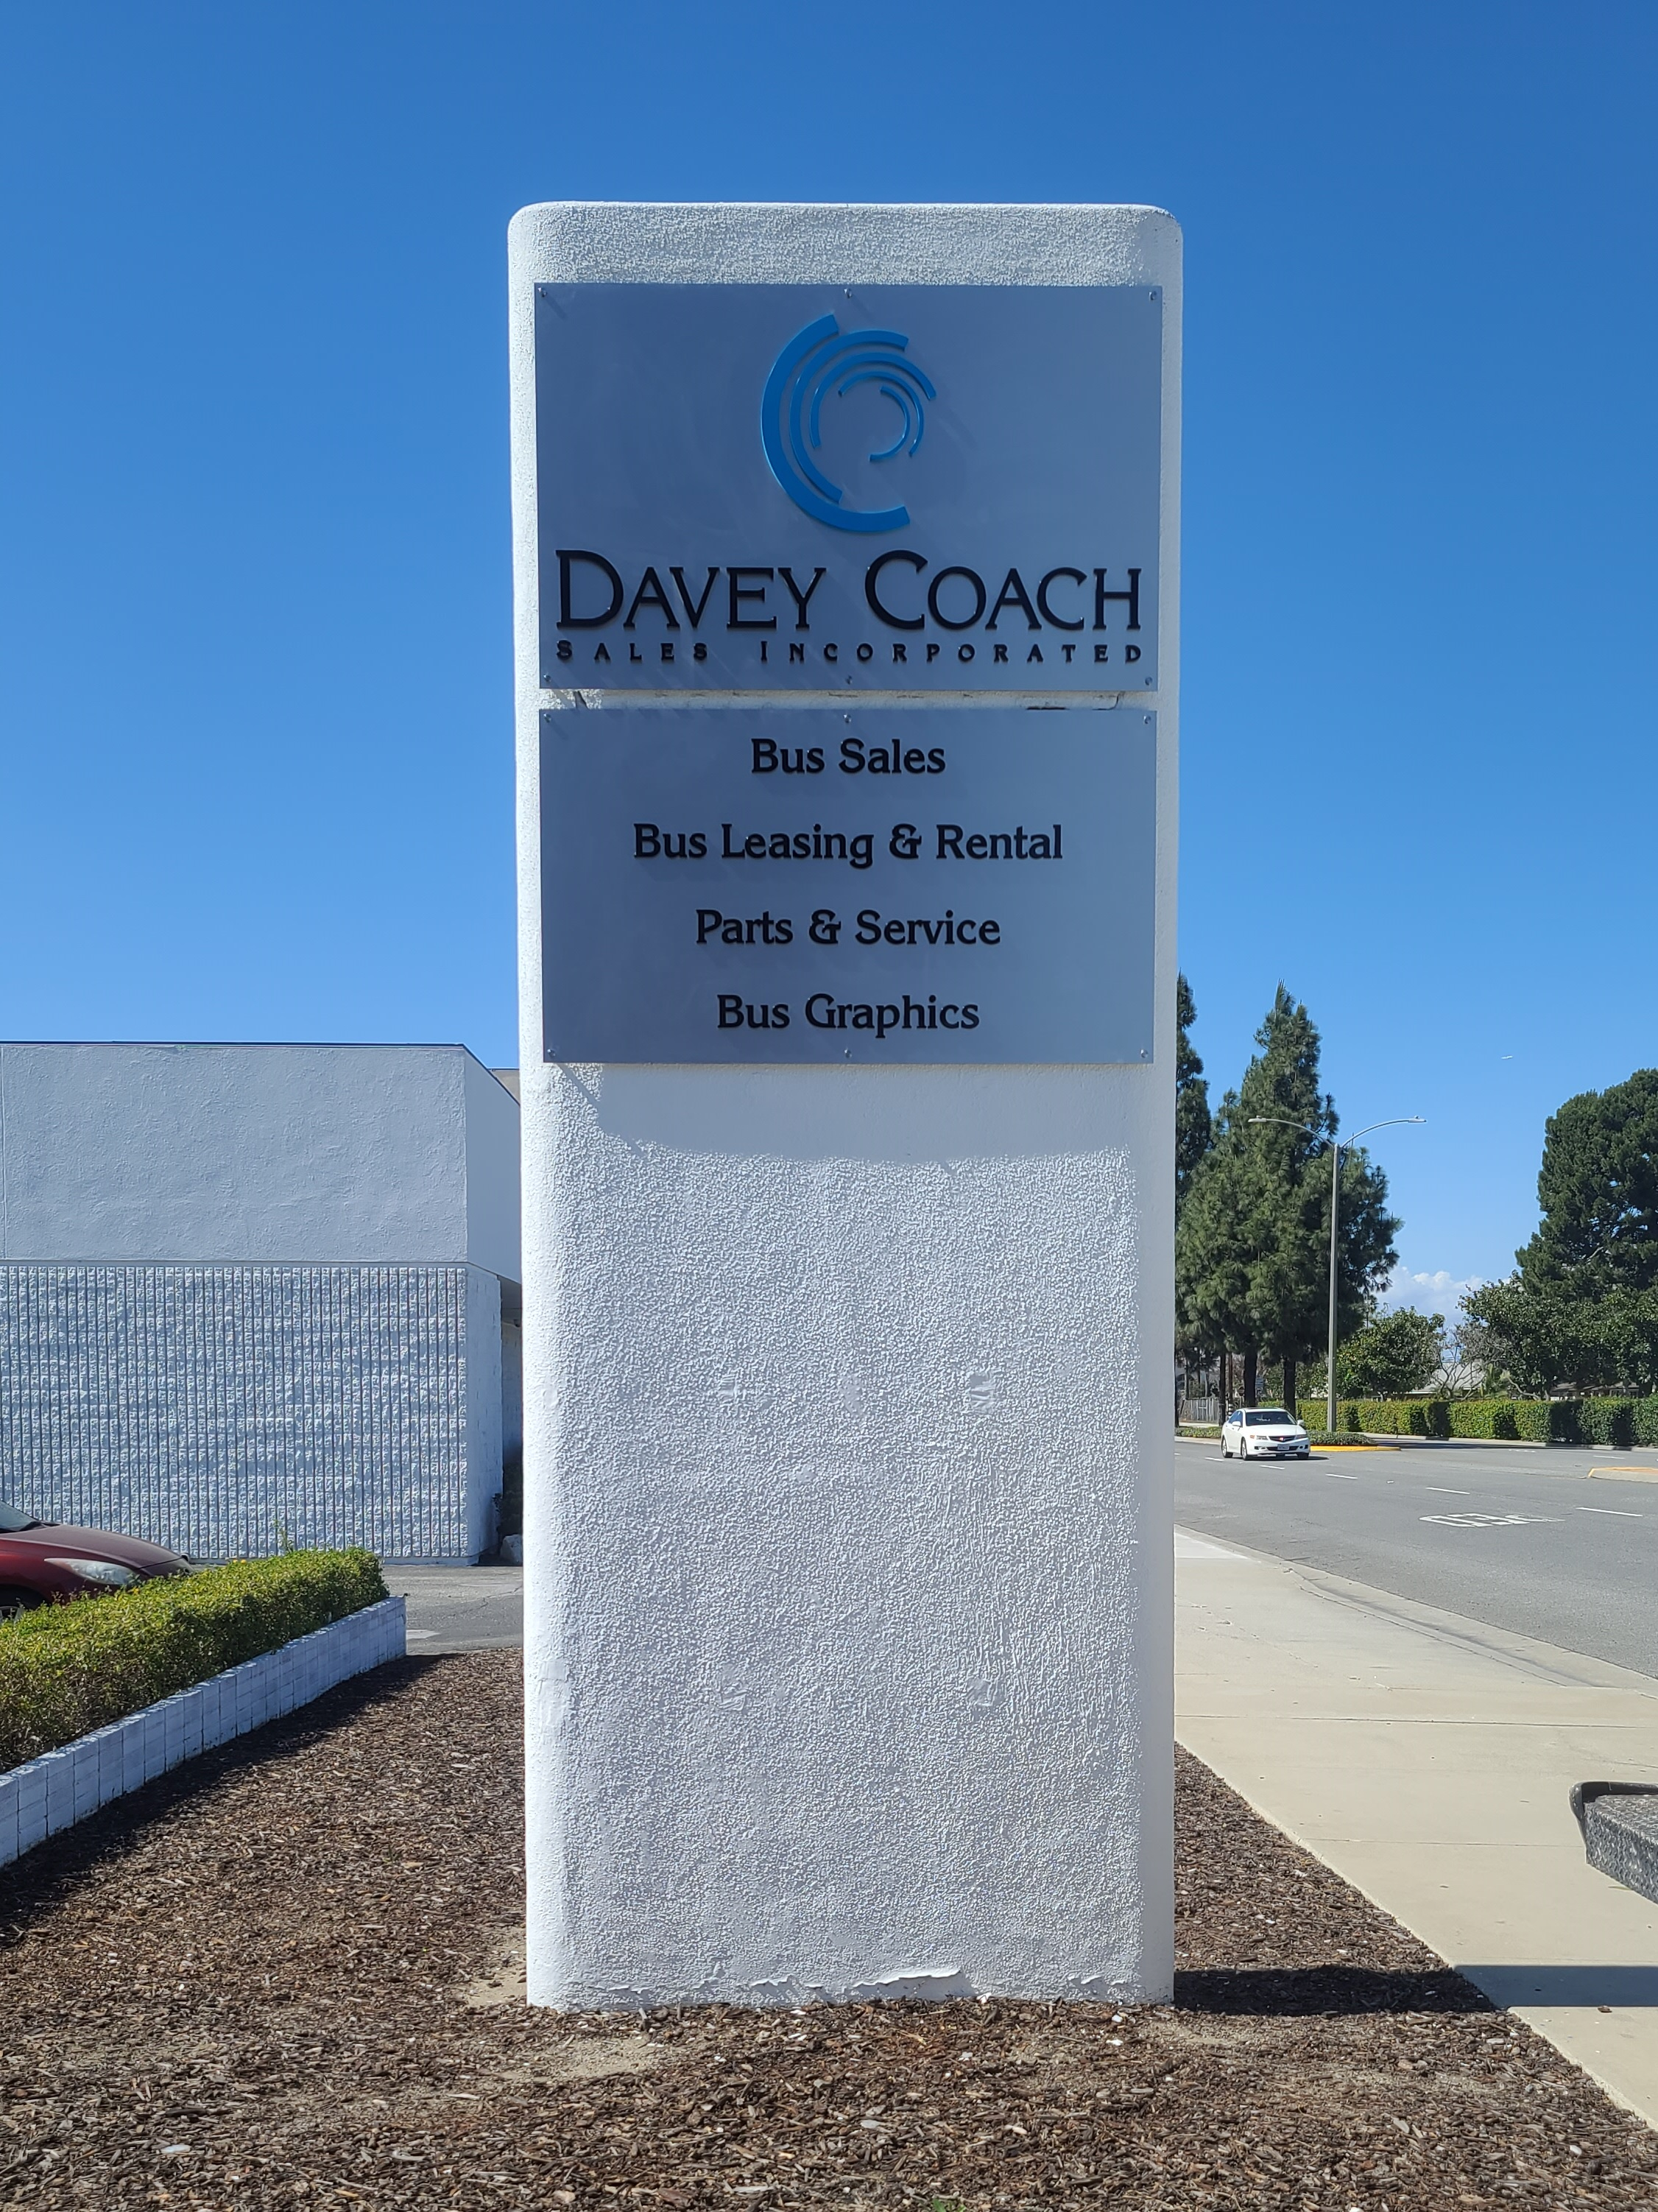 Dimensional letters business sign package for Davey Coach's Norwalk establishment.